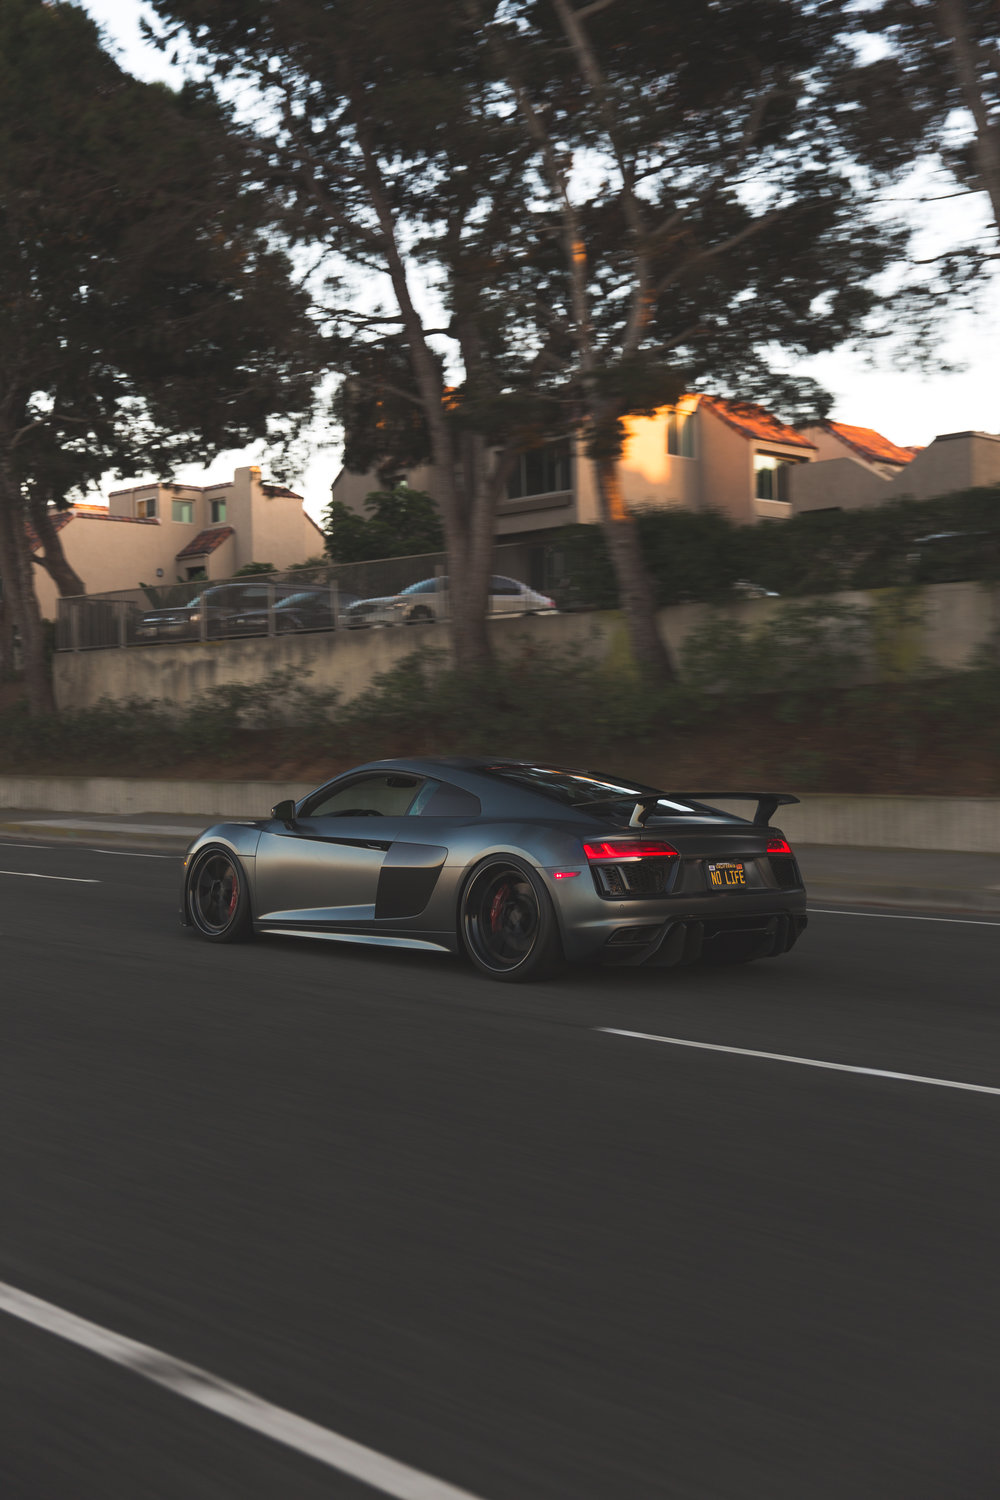 Stay_Driven_Page_R8_Newport-5.jpg